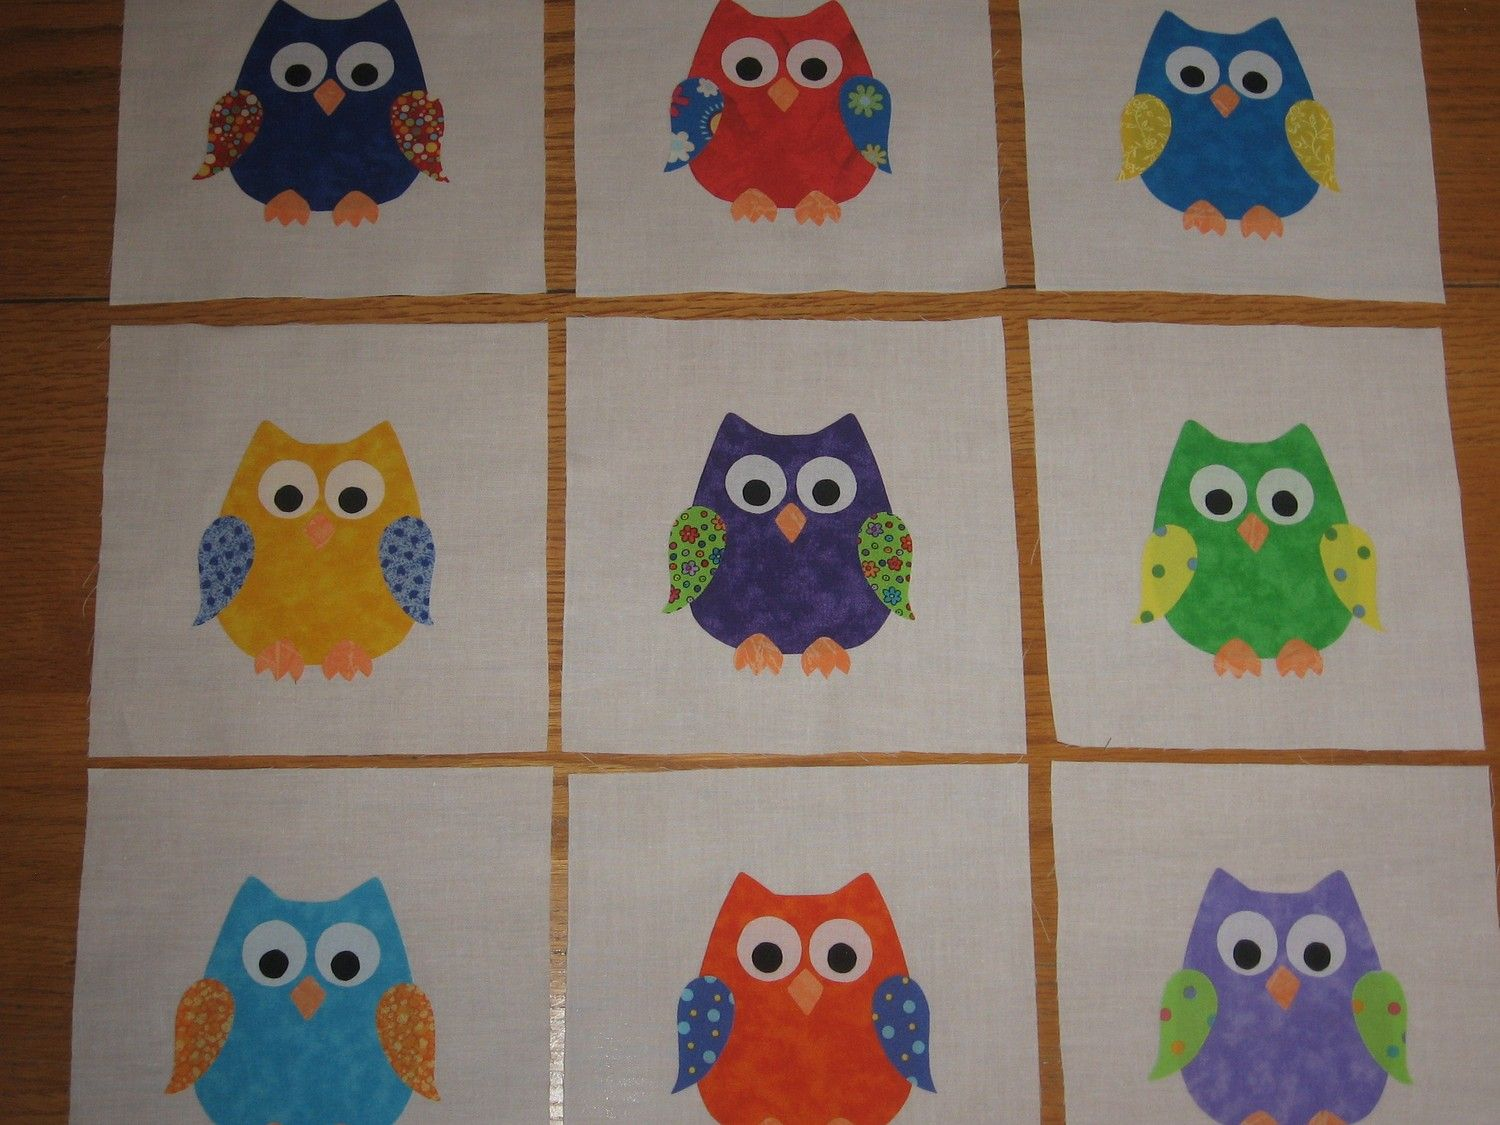 The edges of the appliques will have to be finished by you before ... : owl applique quilt pattern - Adamdwight.com